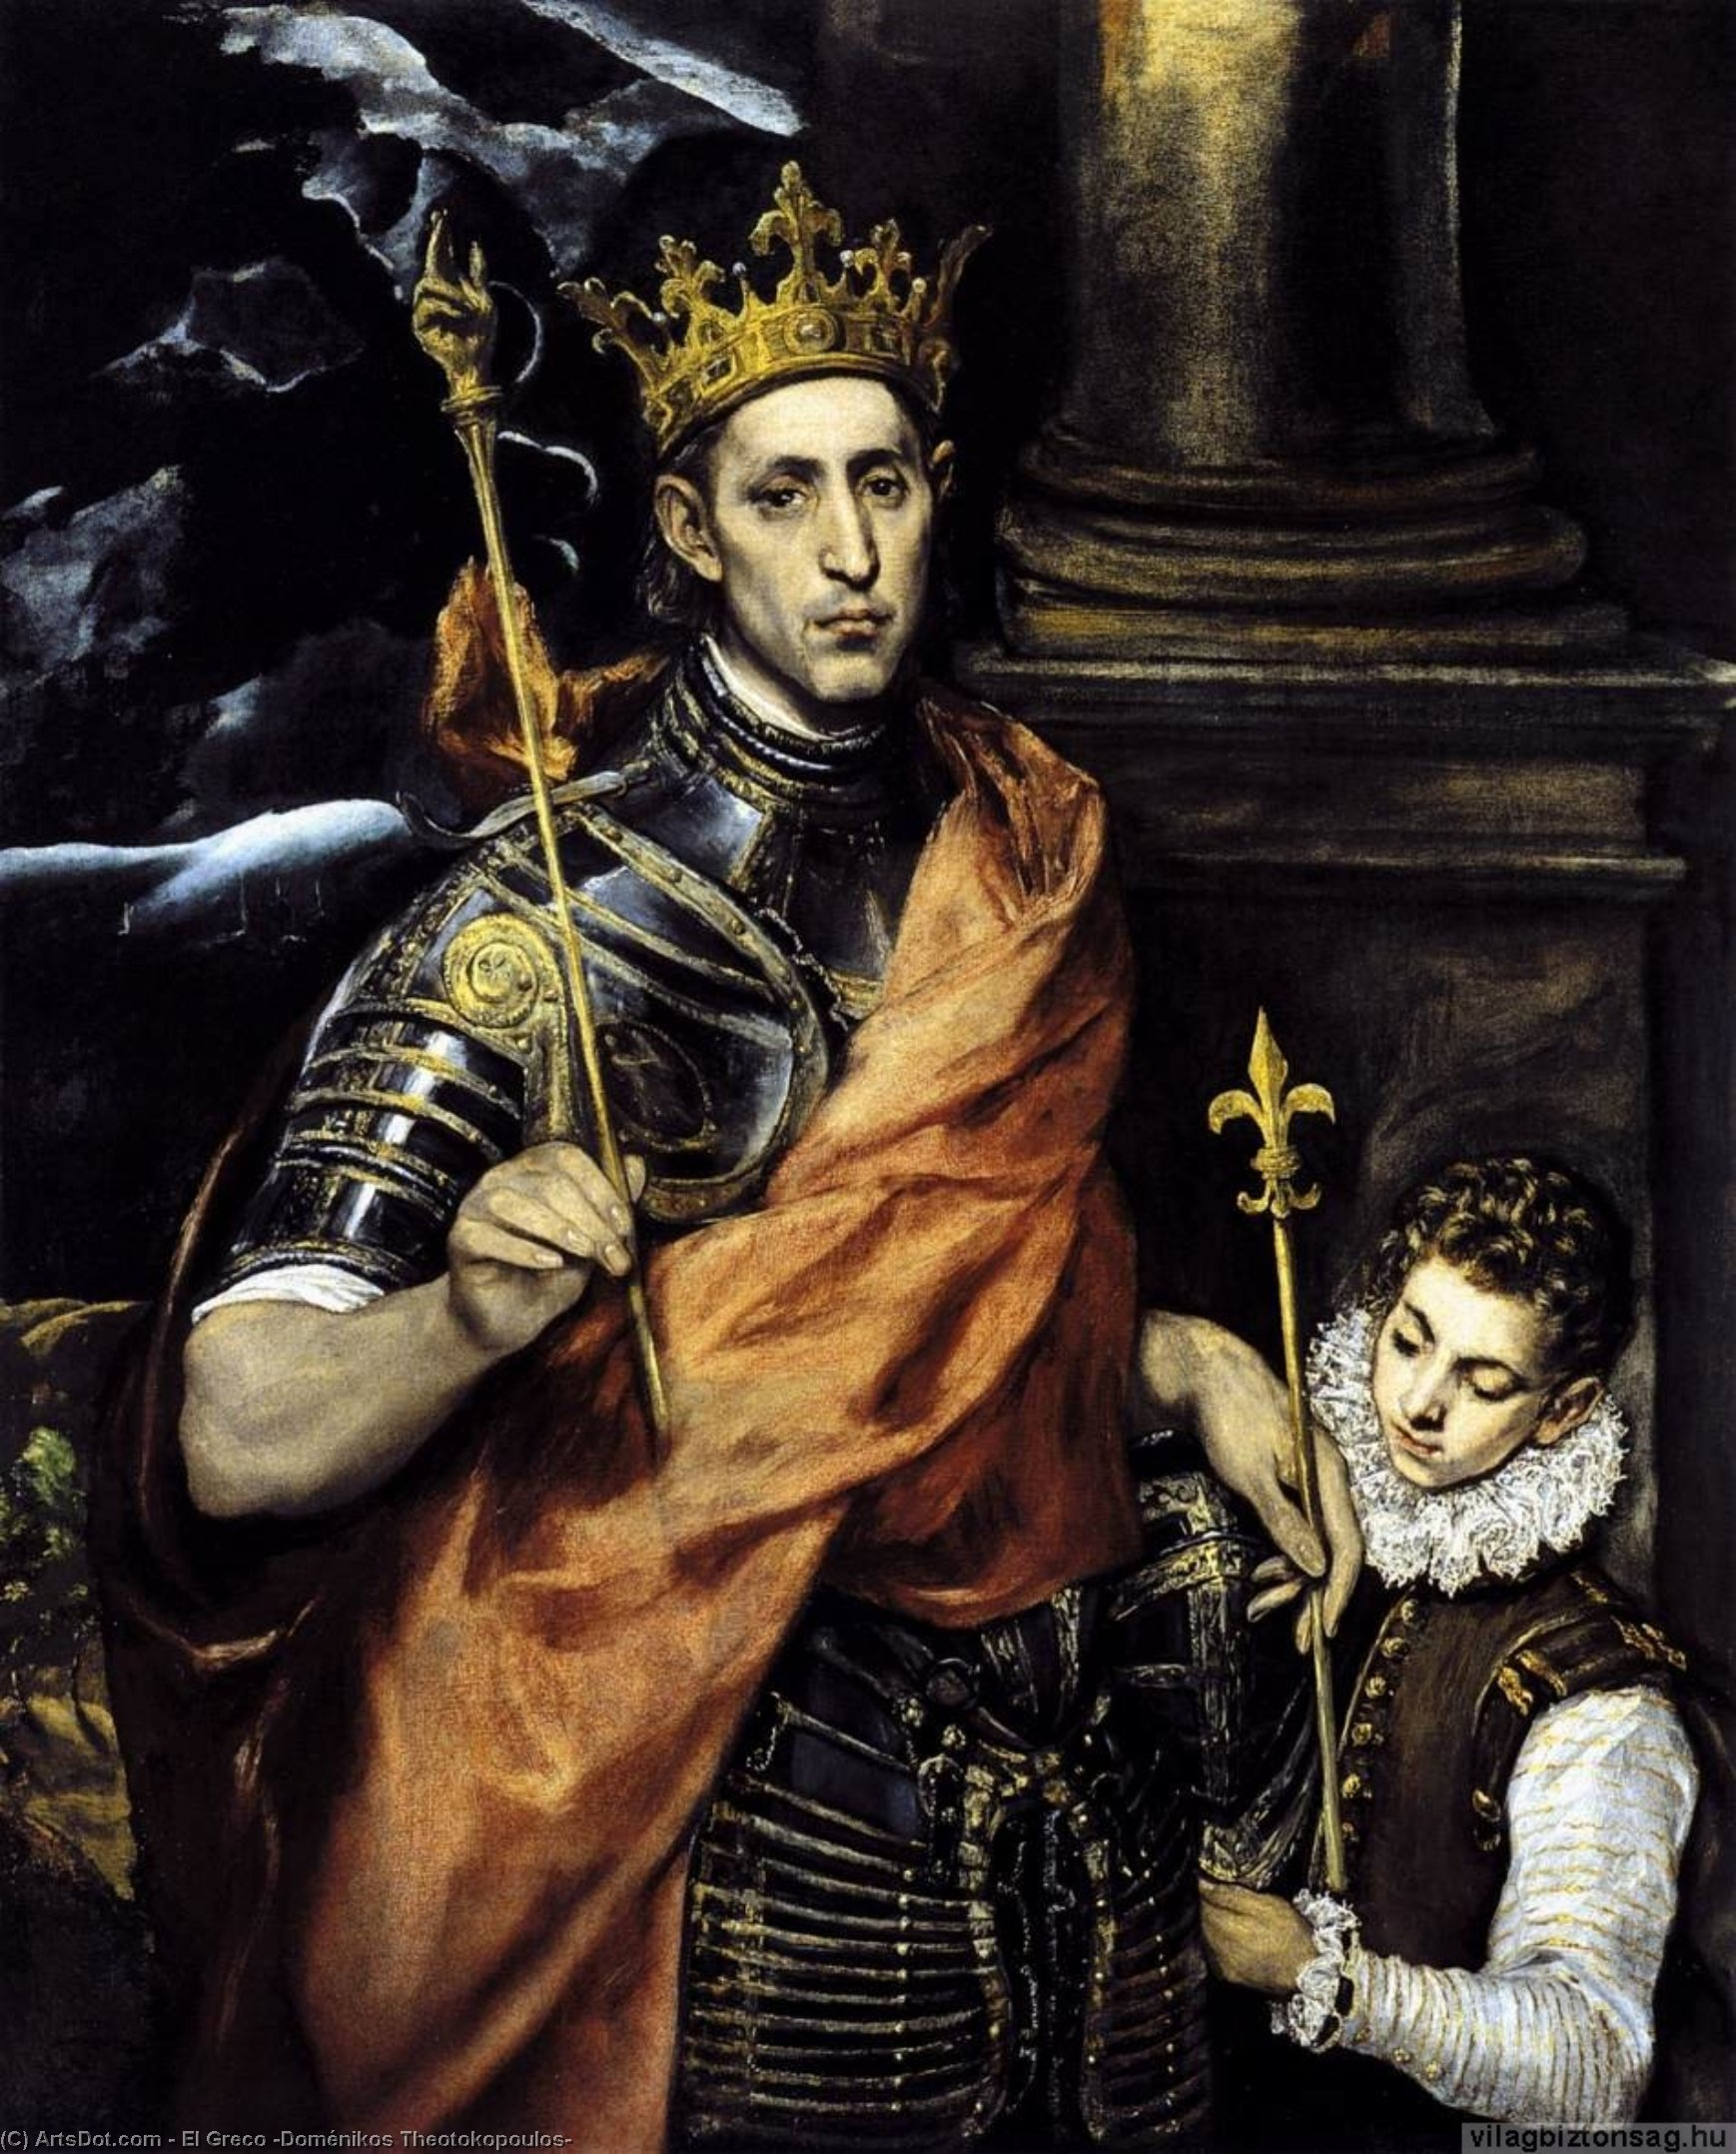 Wikioo.org - The Encyclopedia of Fine Arts - Painting, Artwork by El Greco (Doménikos Theotokopoulos) - St Louis, King of France, with a Page